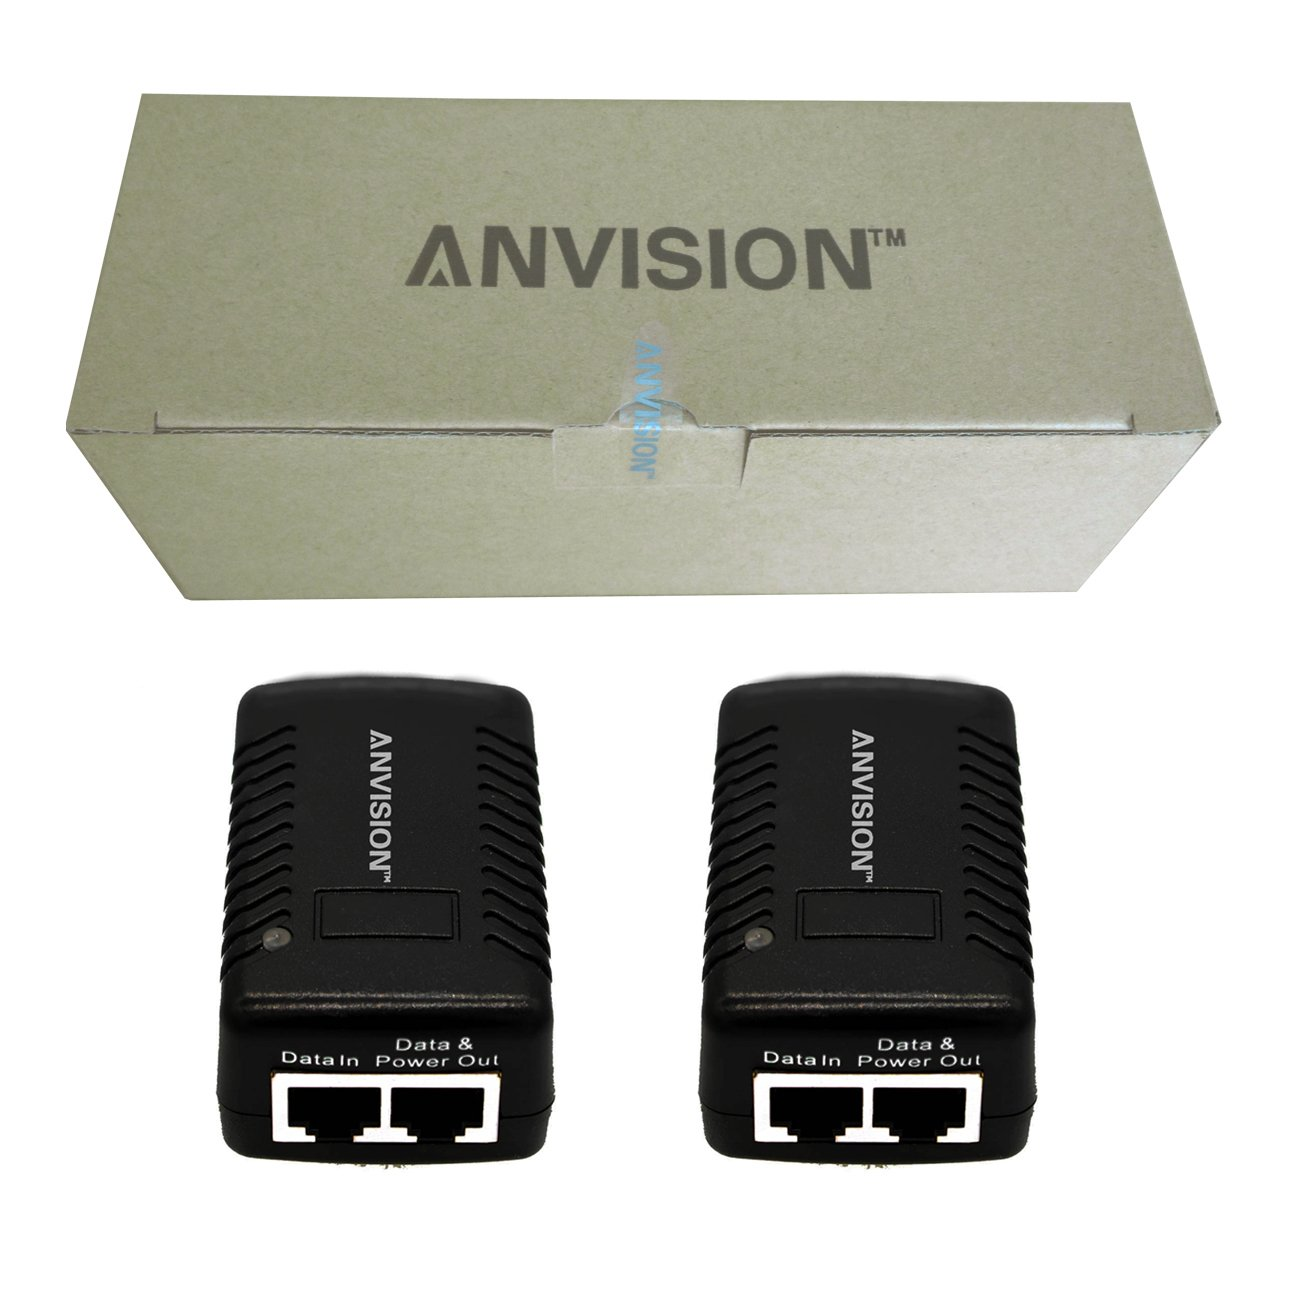 ANVISION 2-Pack 48V 0.5A Passive PoE Power Supply Injector Ethernet Adapter with Wall Plug IEEE 802.3af Compliant 10//100Mbps for IP Voip Phones Cameras AP and More